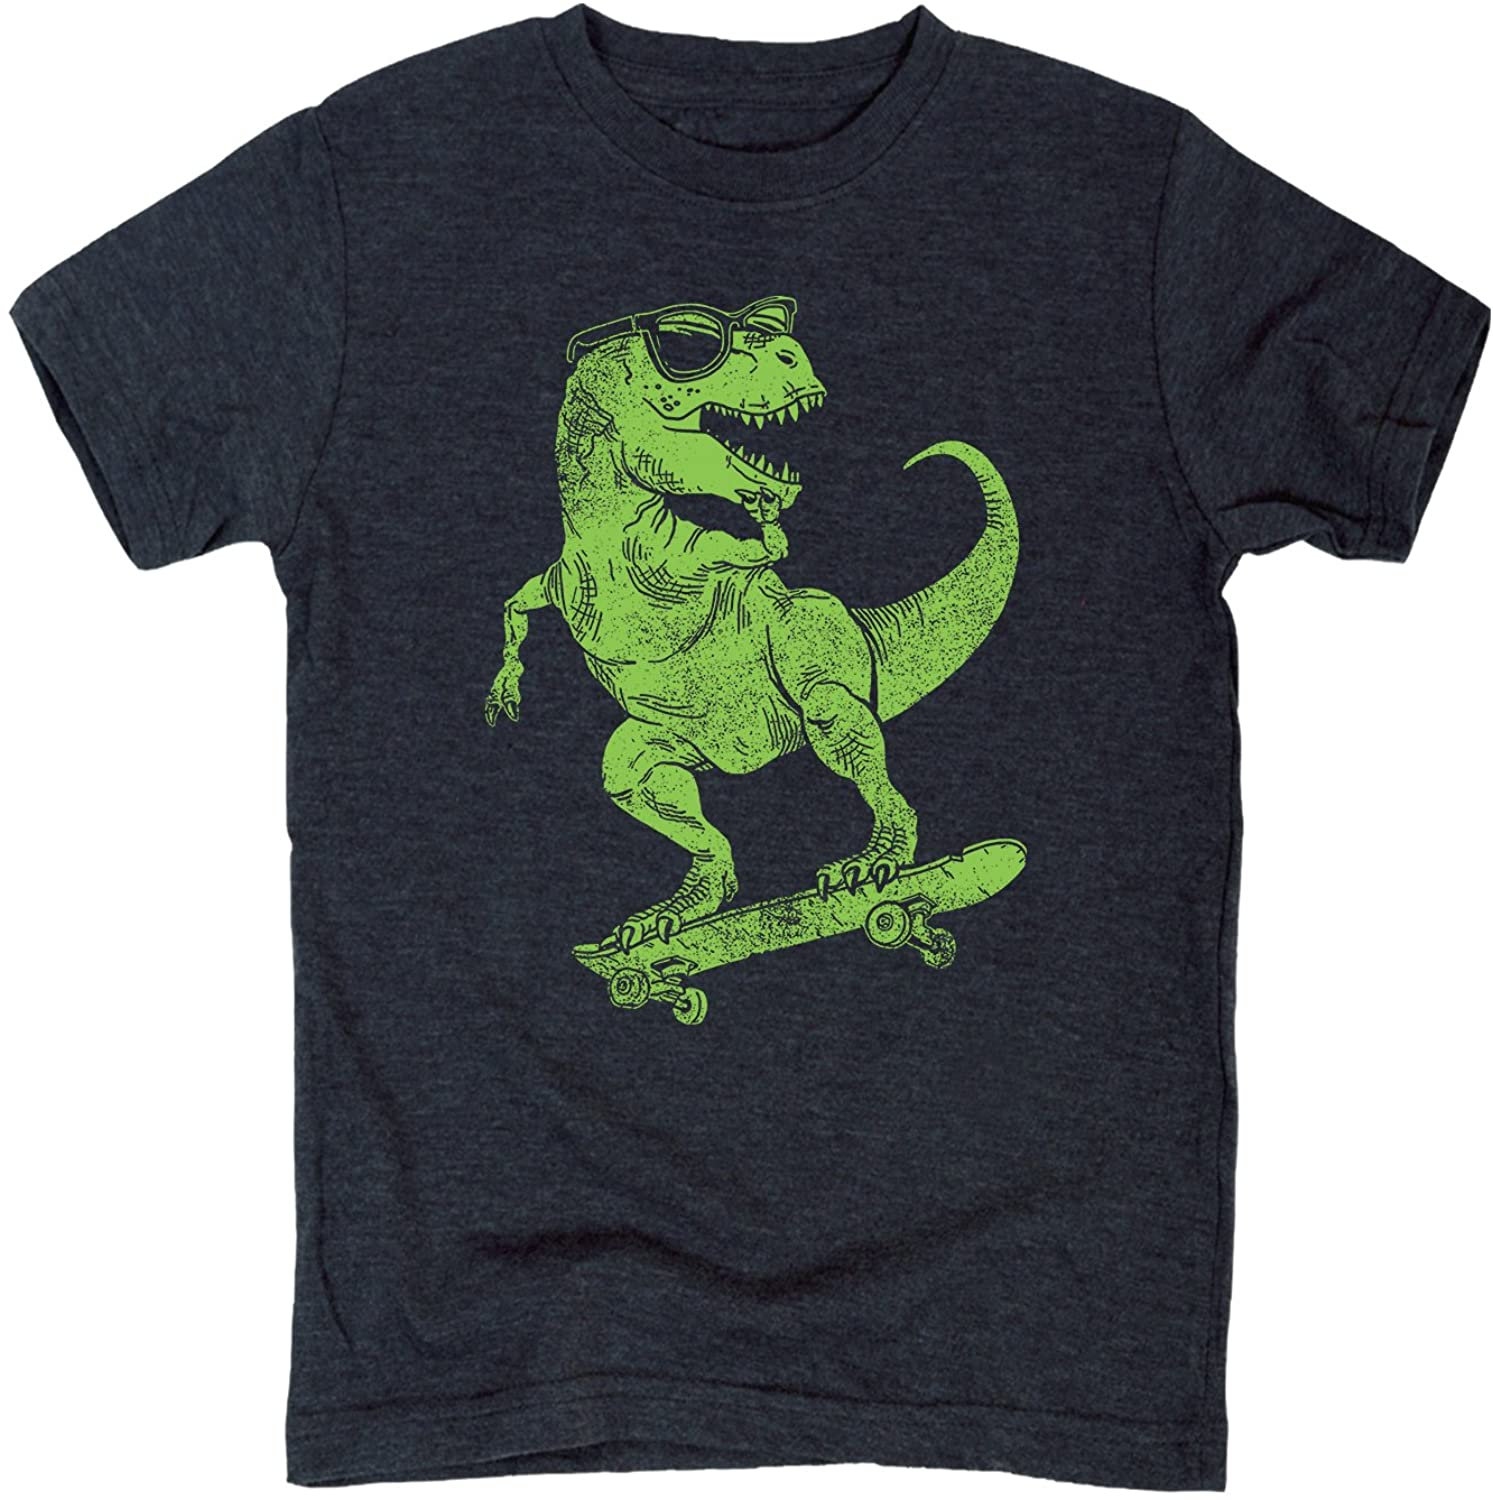 T-Rex Skate - Youth Short Sleeve Graphic T-Shirt